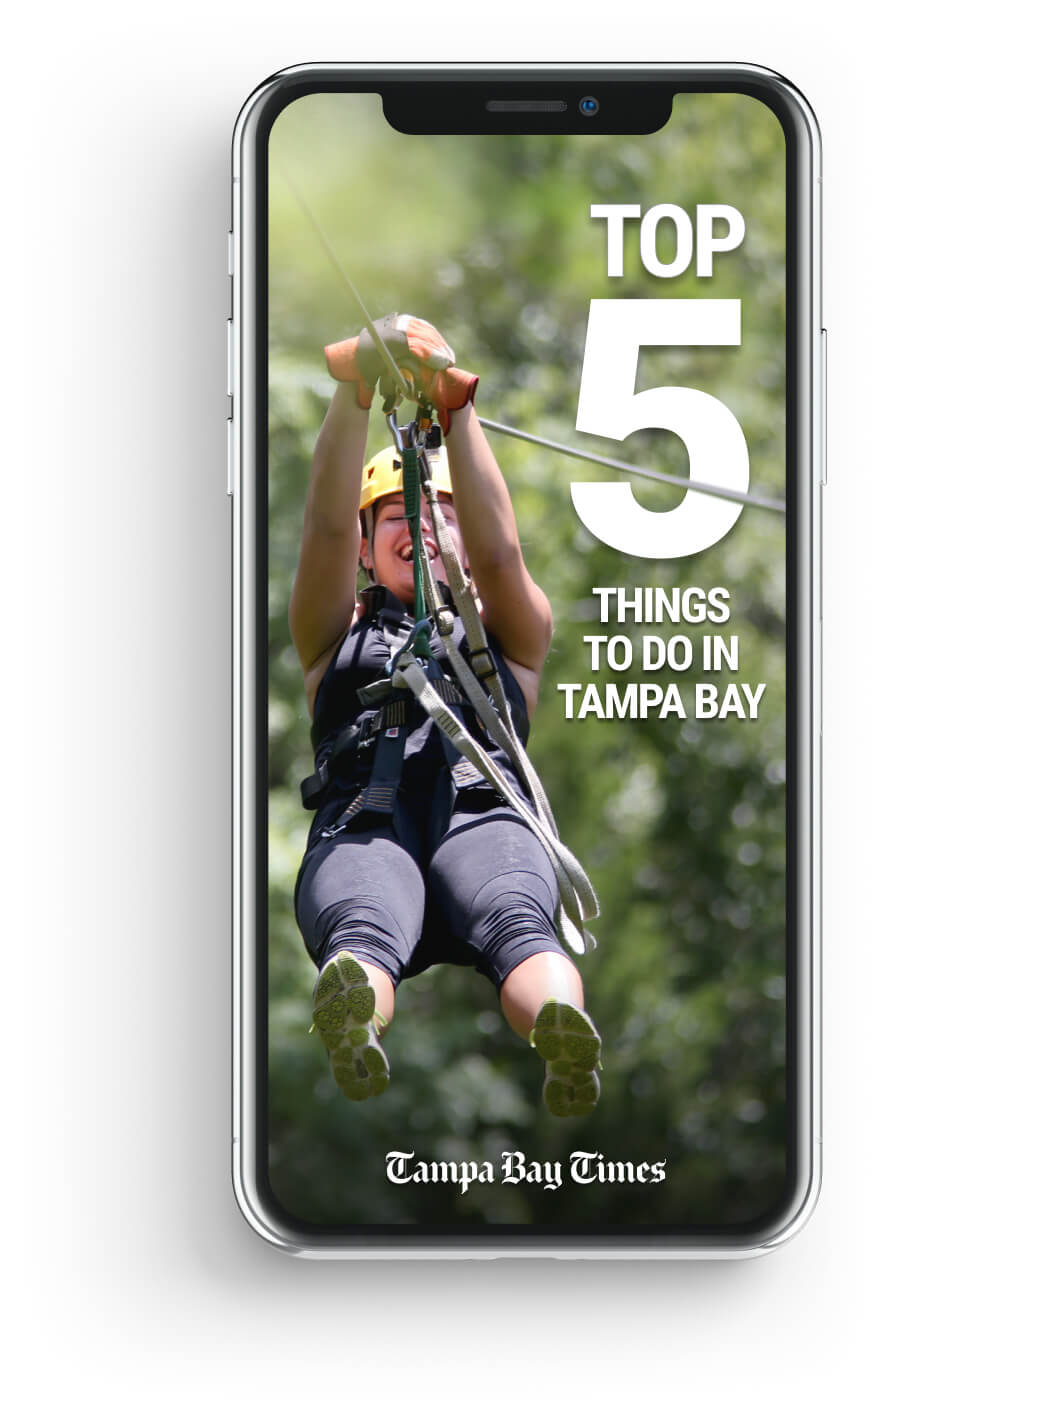 The Tampa Bay Times 'Top 5' newsletter